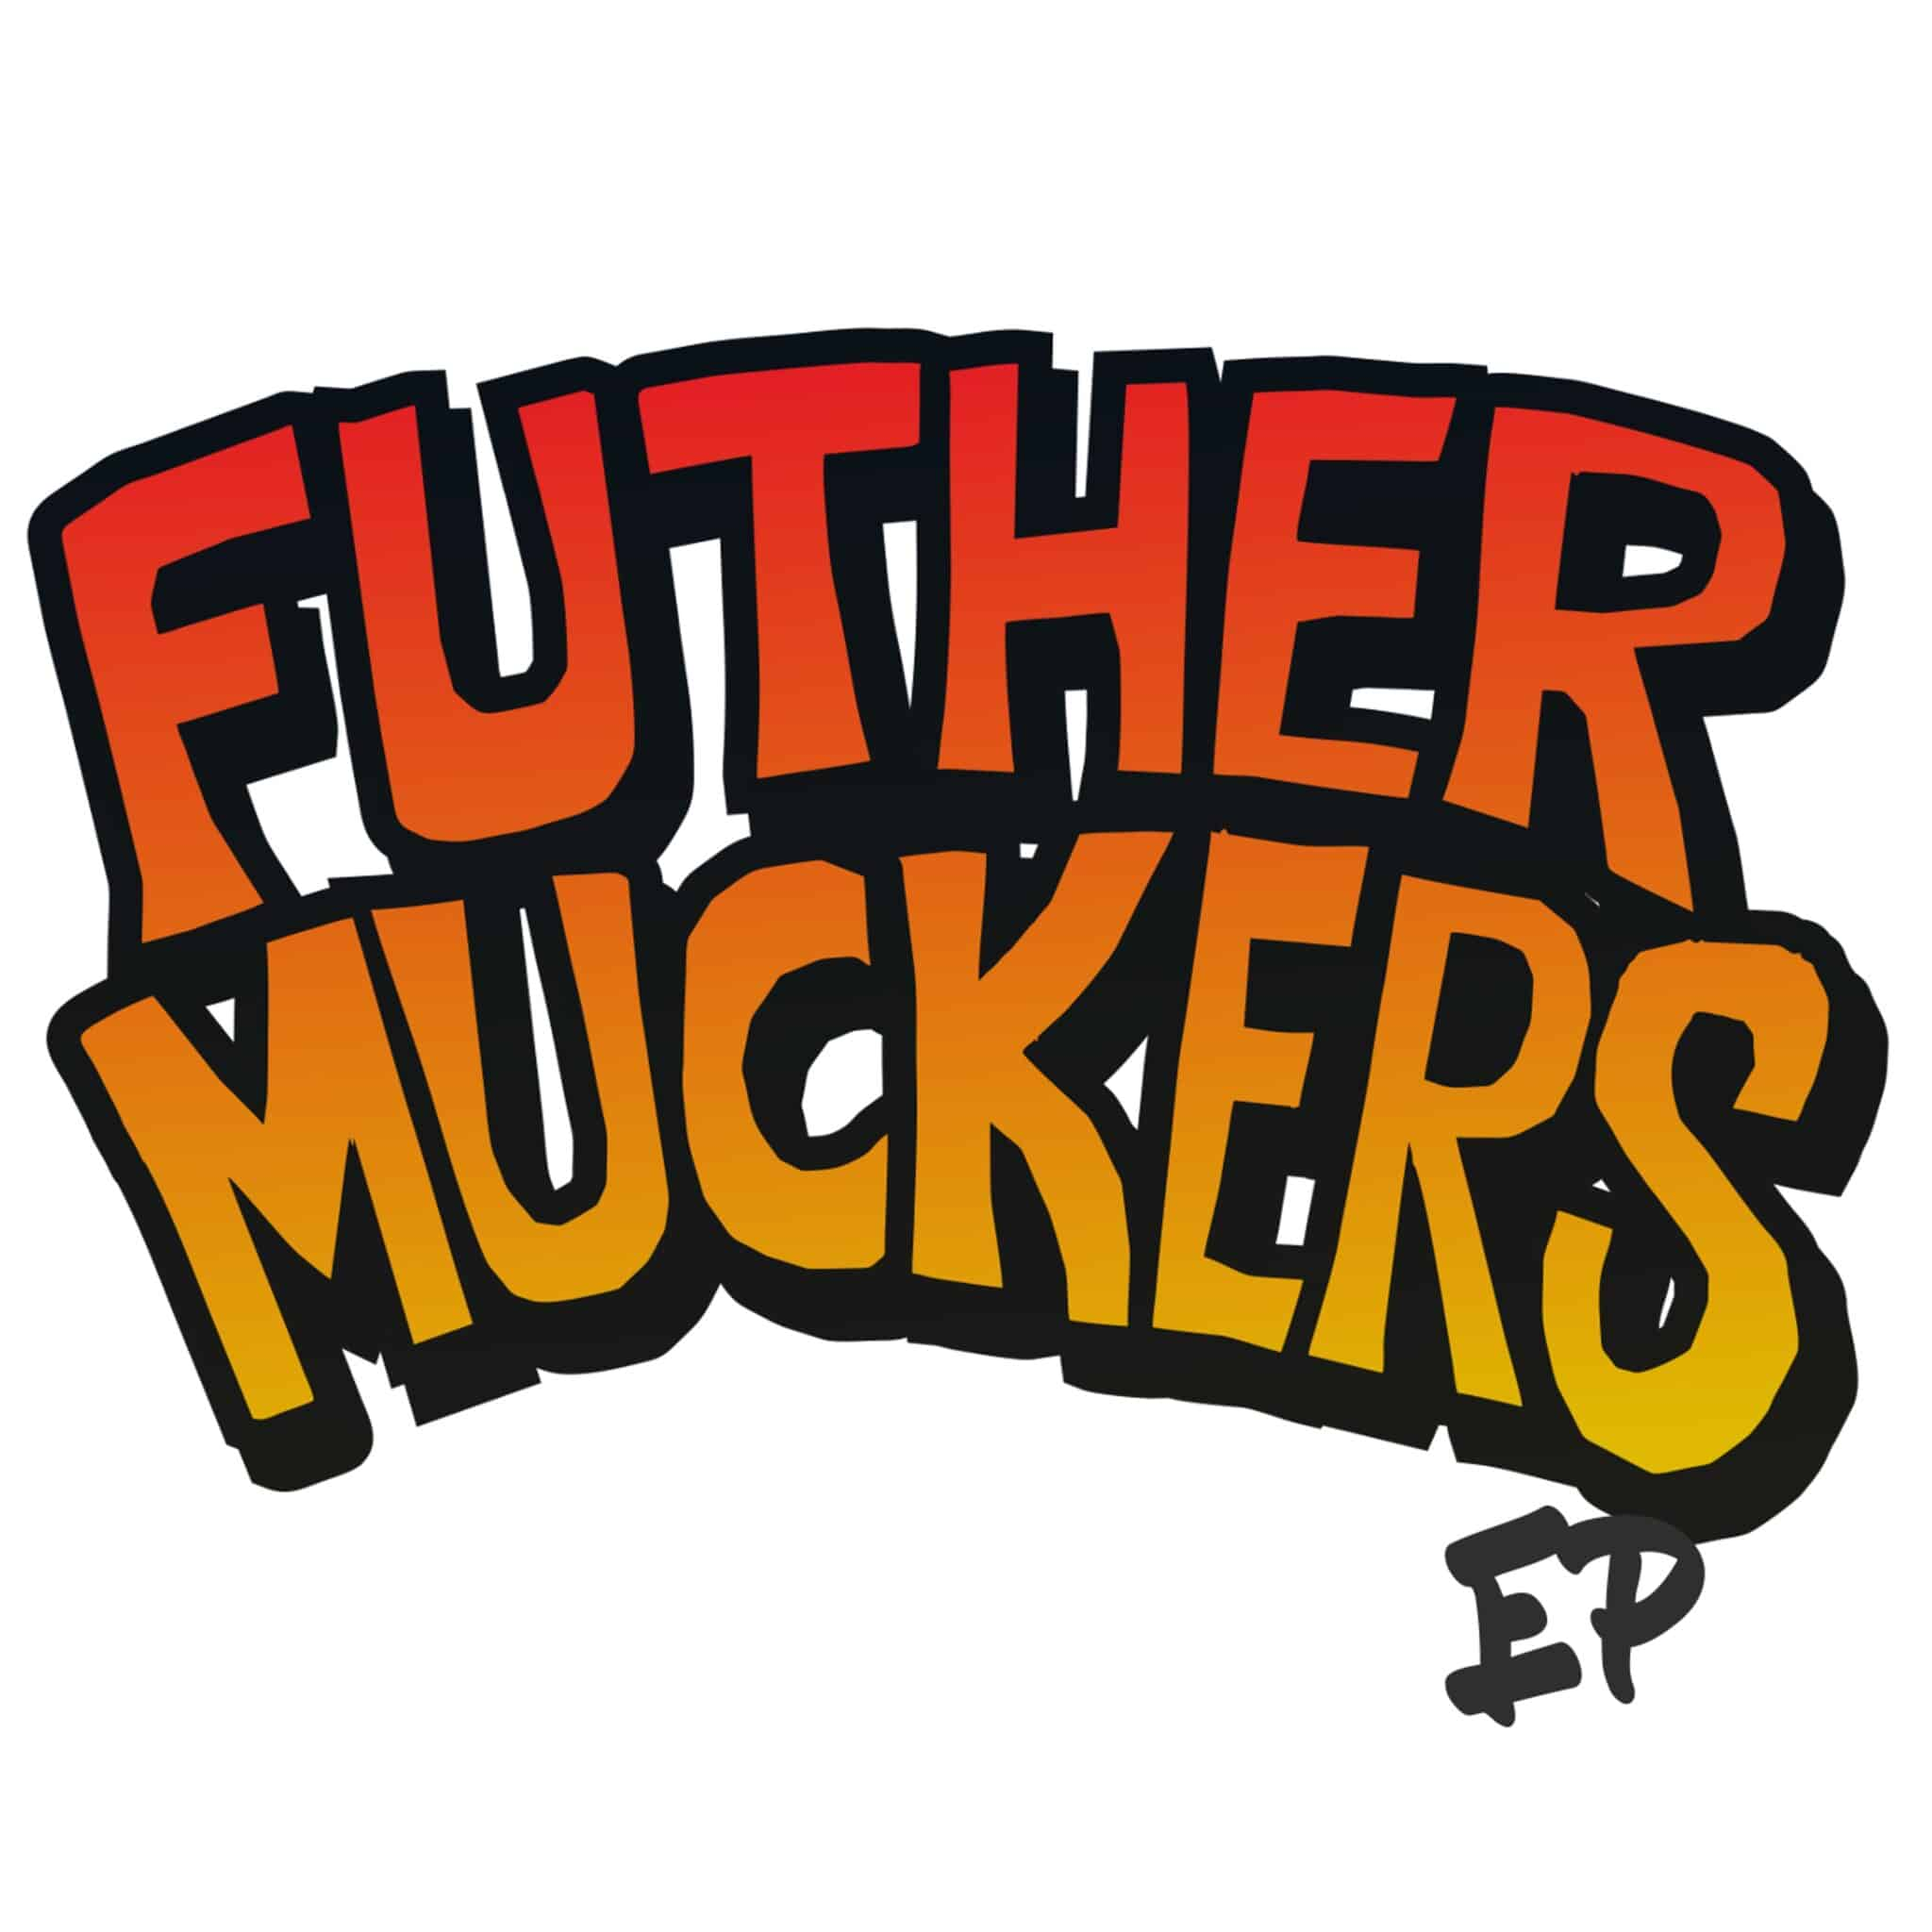 Futhermuckers punk rock uk spain